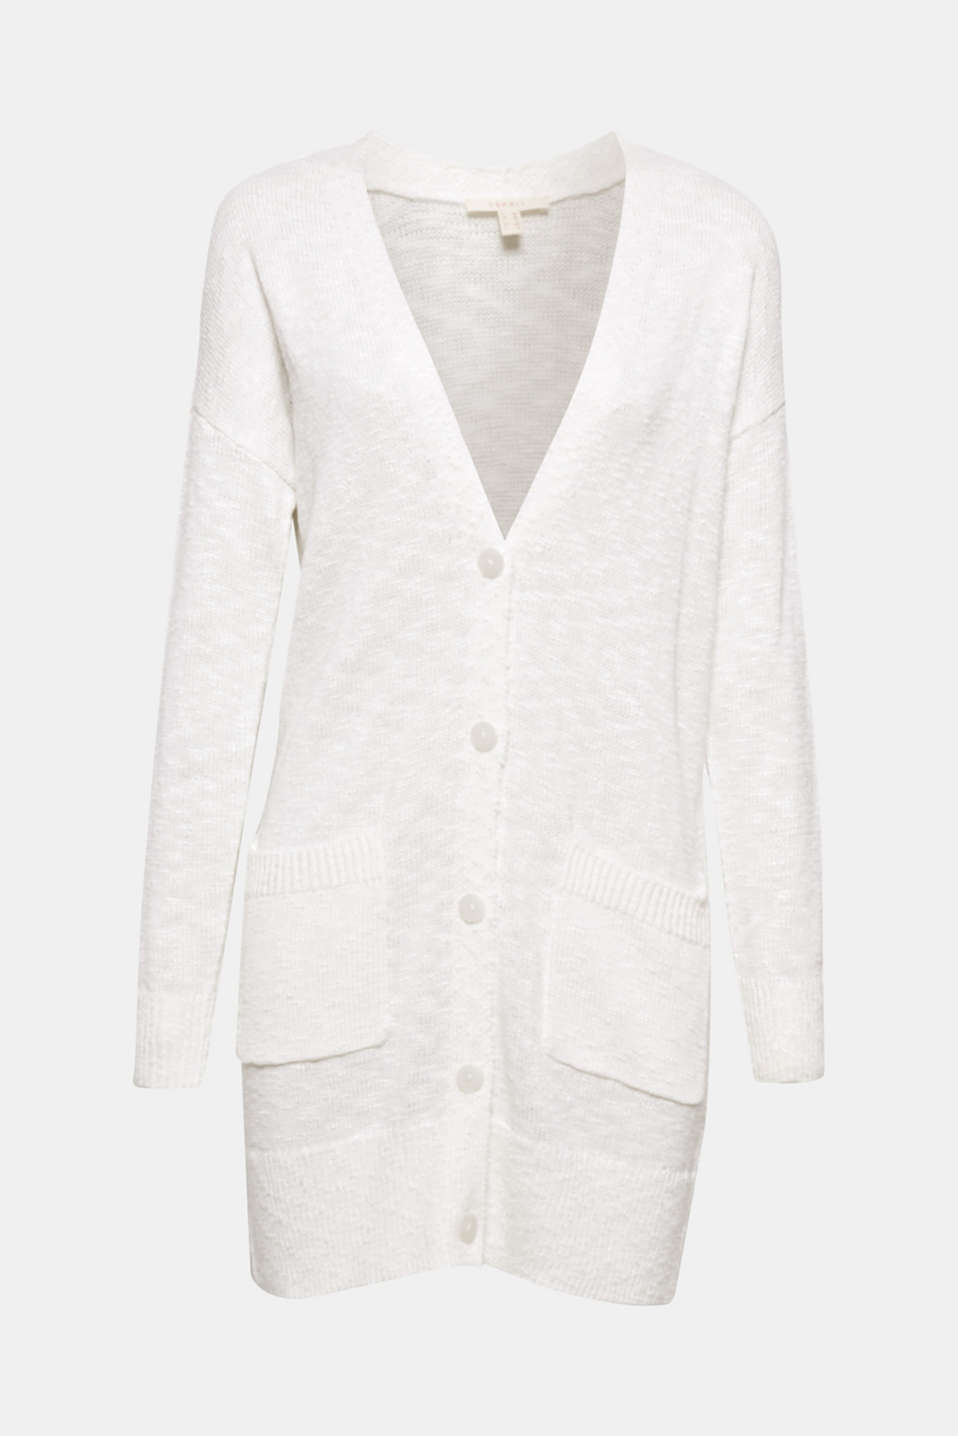 Your top separate for spring: This long cardigan in textured yarn with shimmering effects goes with sporty and chic looks!